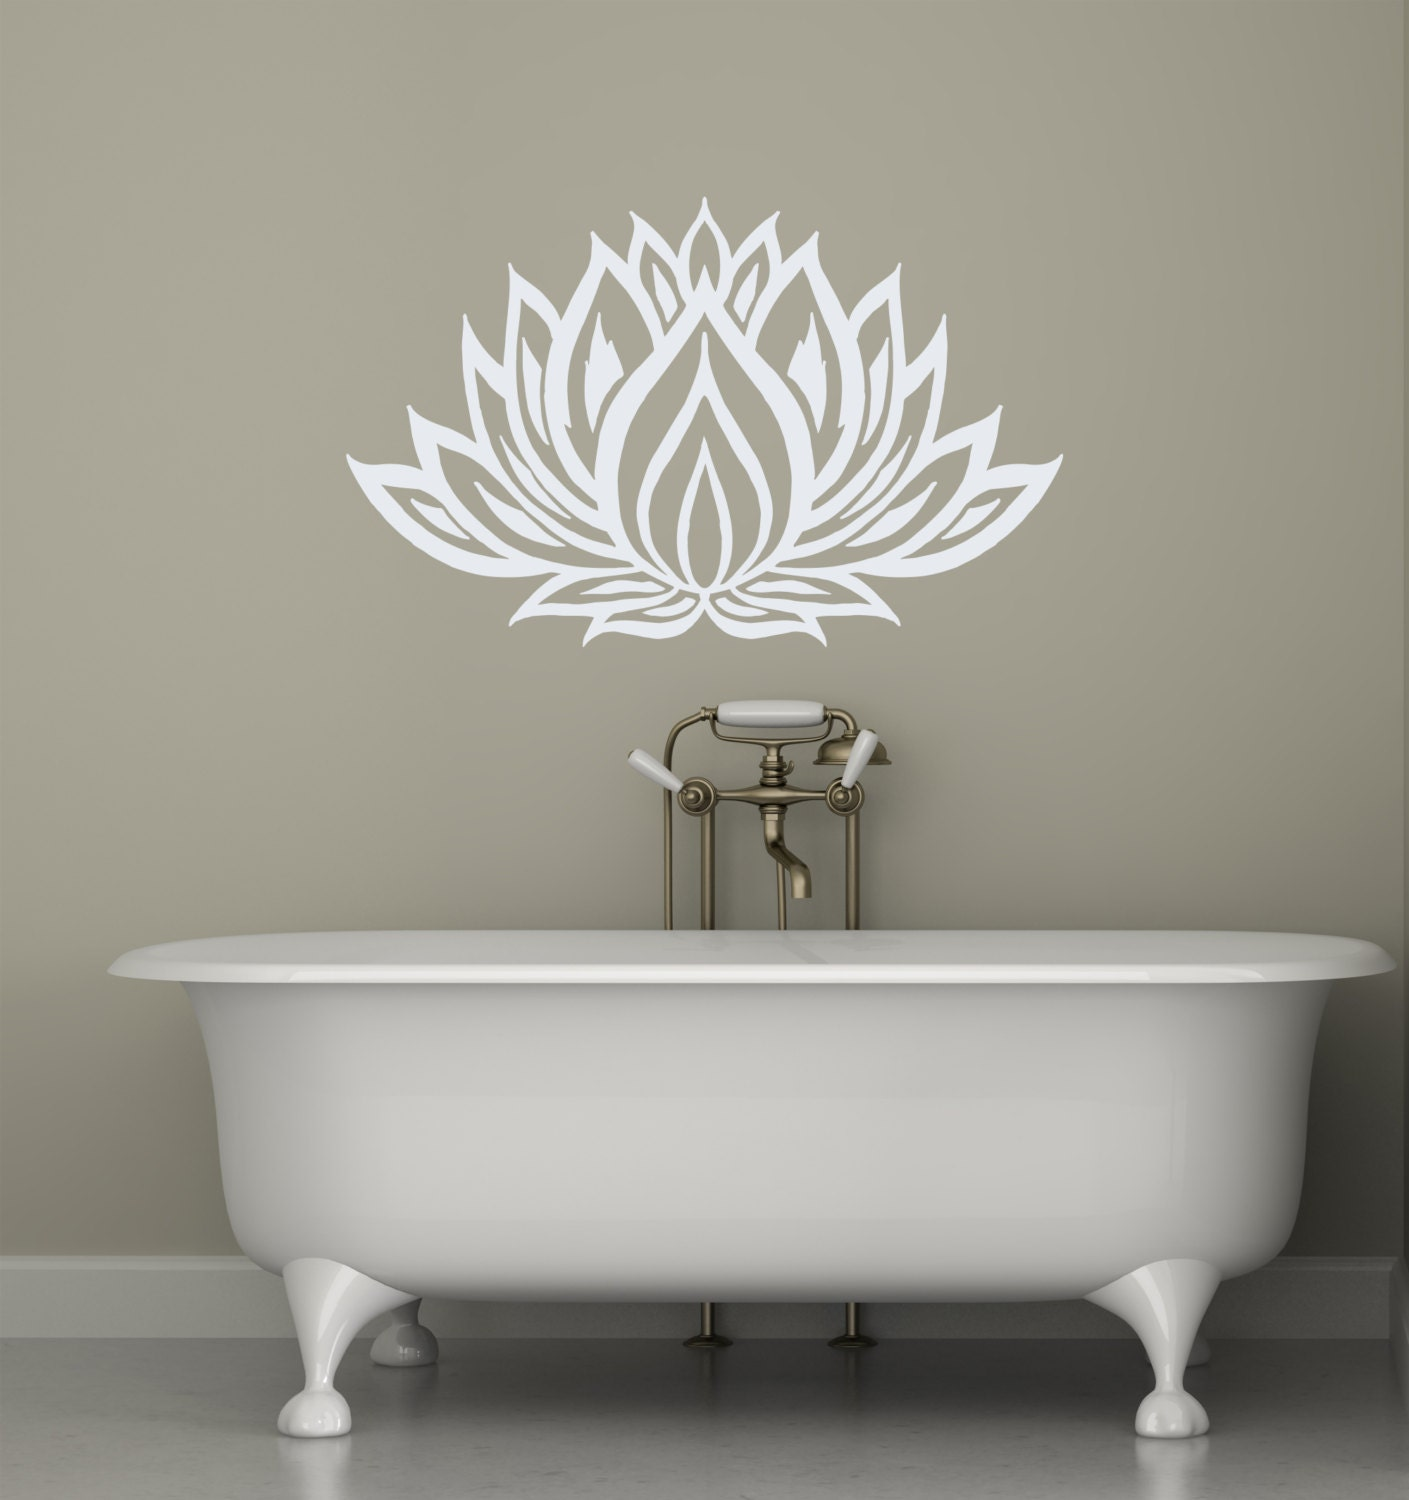 Lotus Flower Wall Decals Yoga Vinyl Decal Interior Home